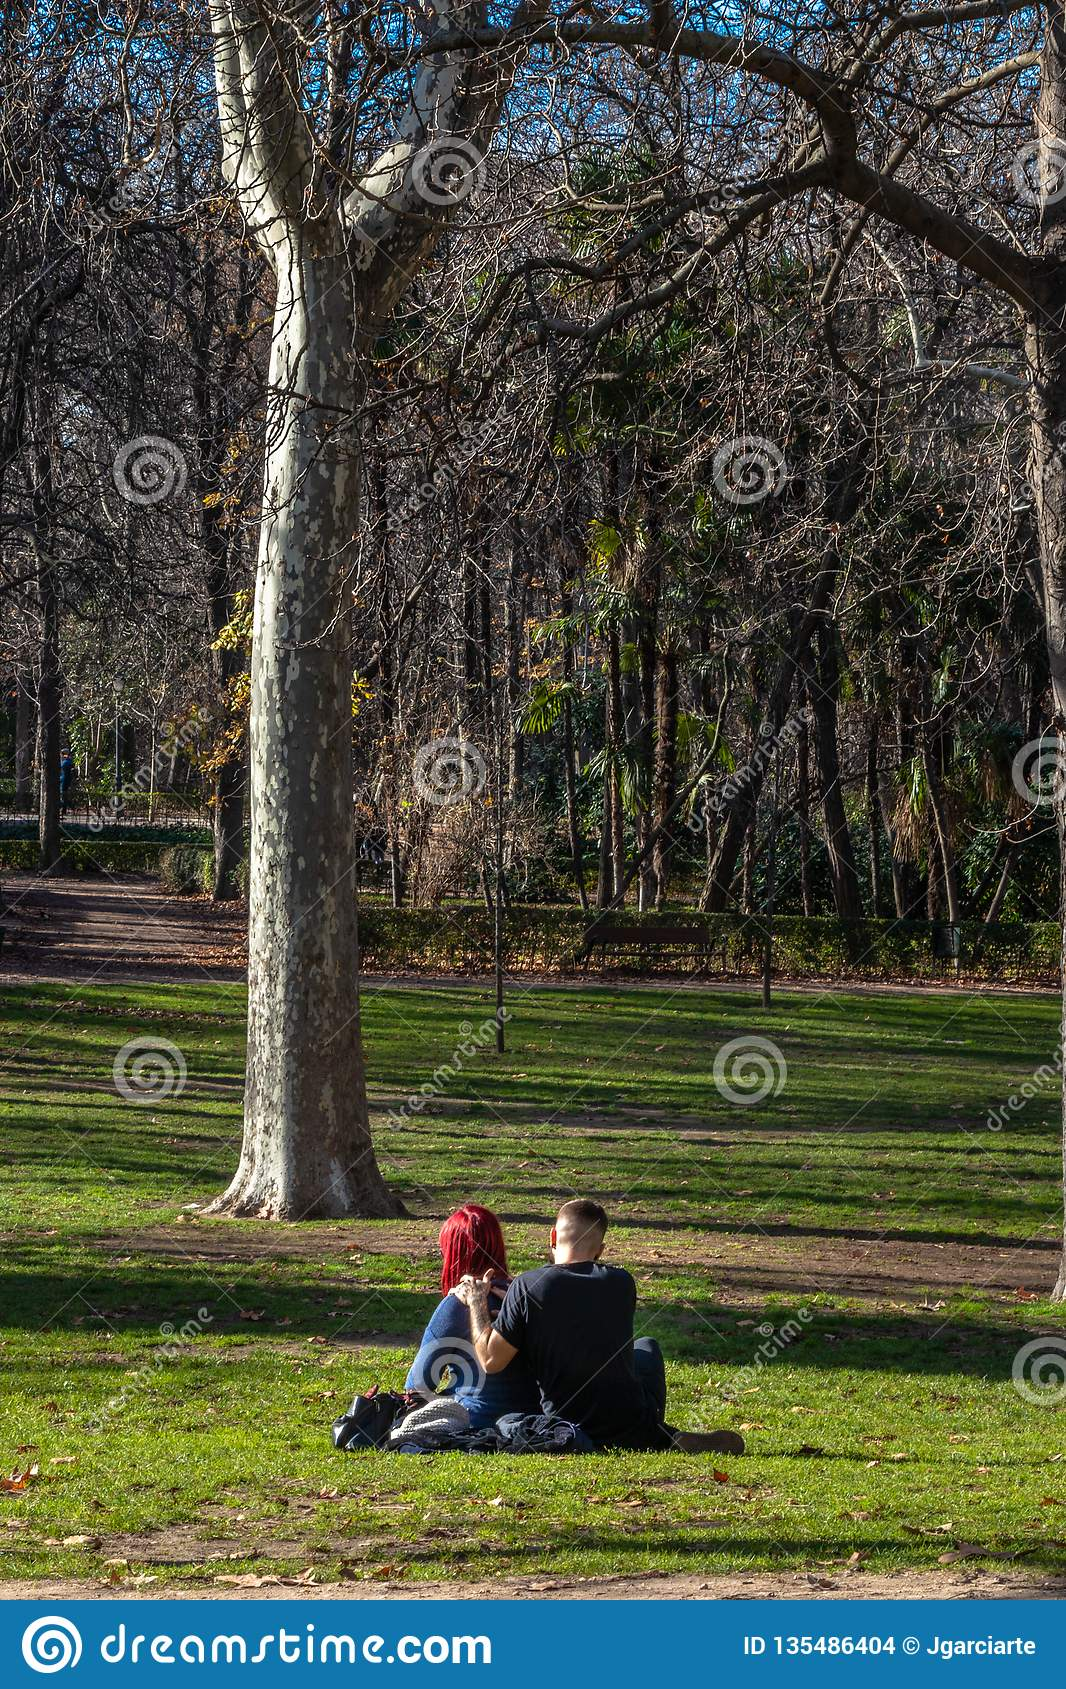 Young couple in love on the grass in an outdoor park